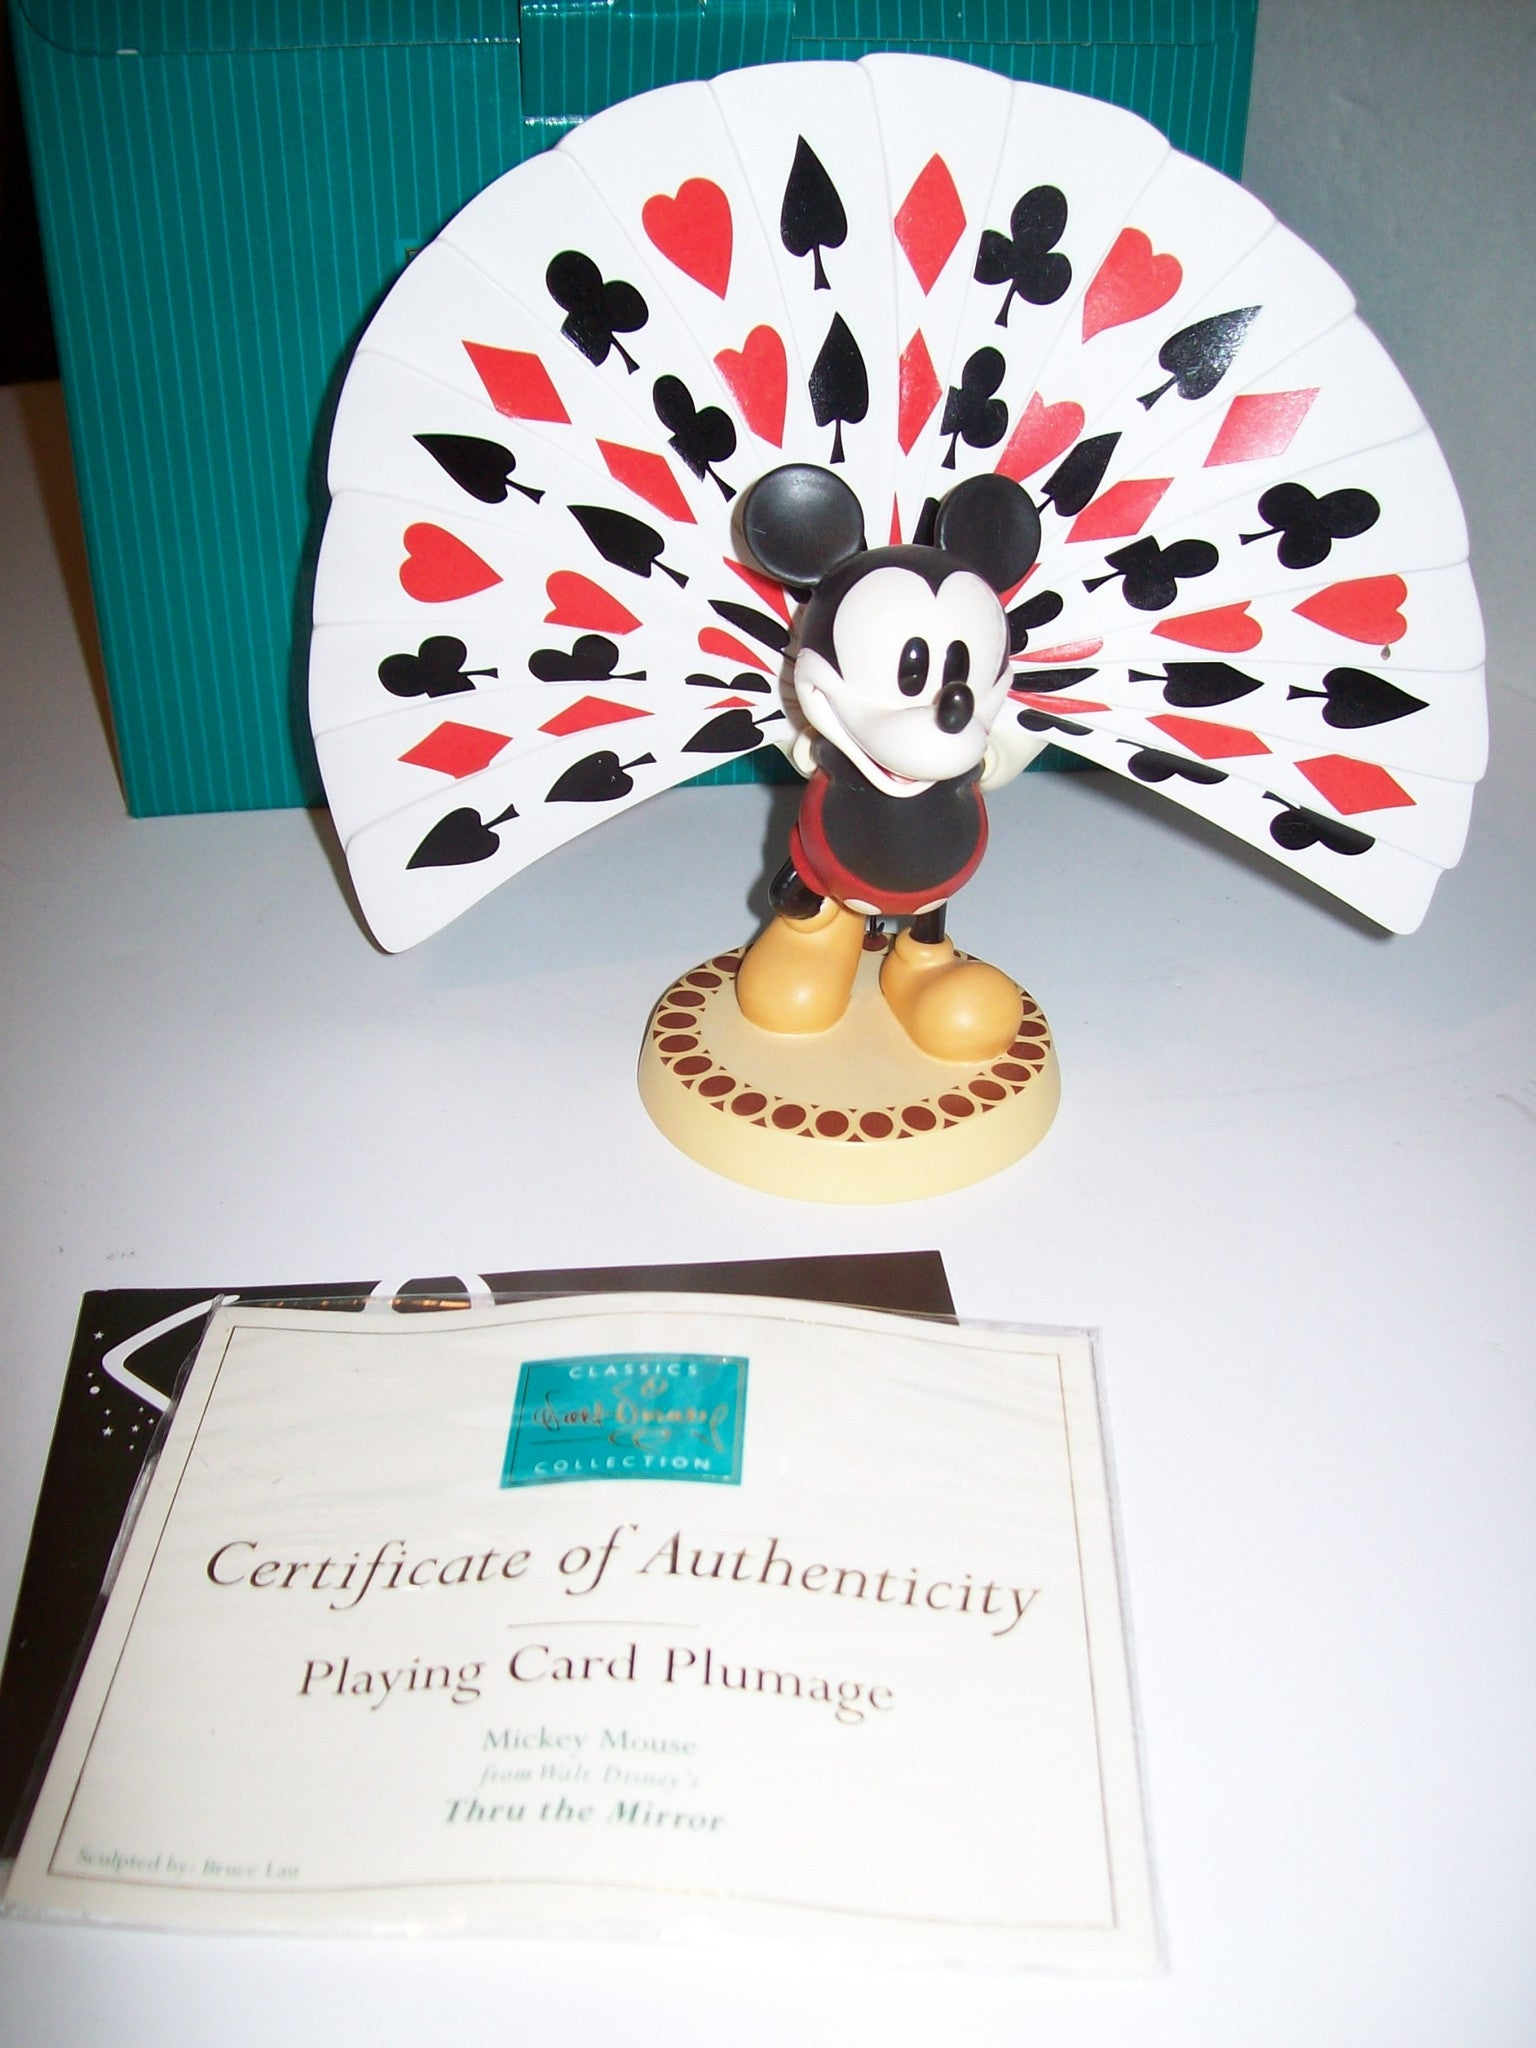 Mickey Mouse Playing Card Plumage WDCC Disney Figurine - We Got Character